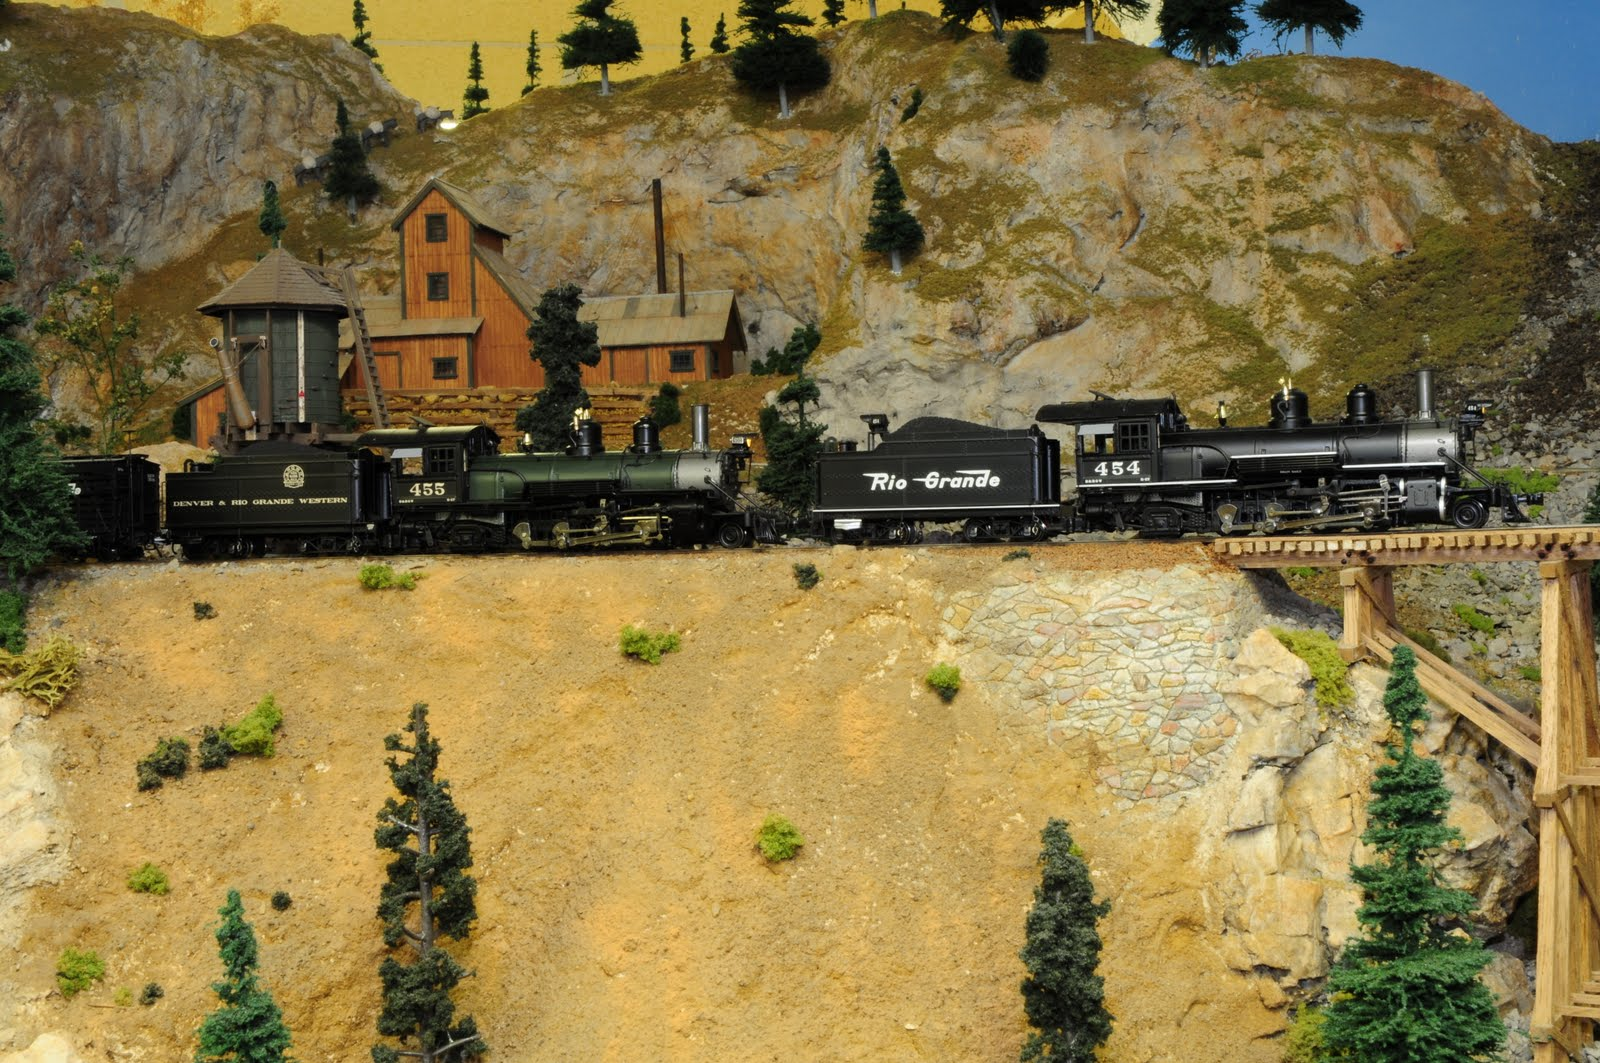 Modeling Colorado Narrow Gauge In Hon3 Dcc For The D Rgw Double Track Wiring Allows Prototypical Helper Service Locomotive Can Be Cut Into Train At Any Location Two Locomotives Then Consisted And Run As